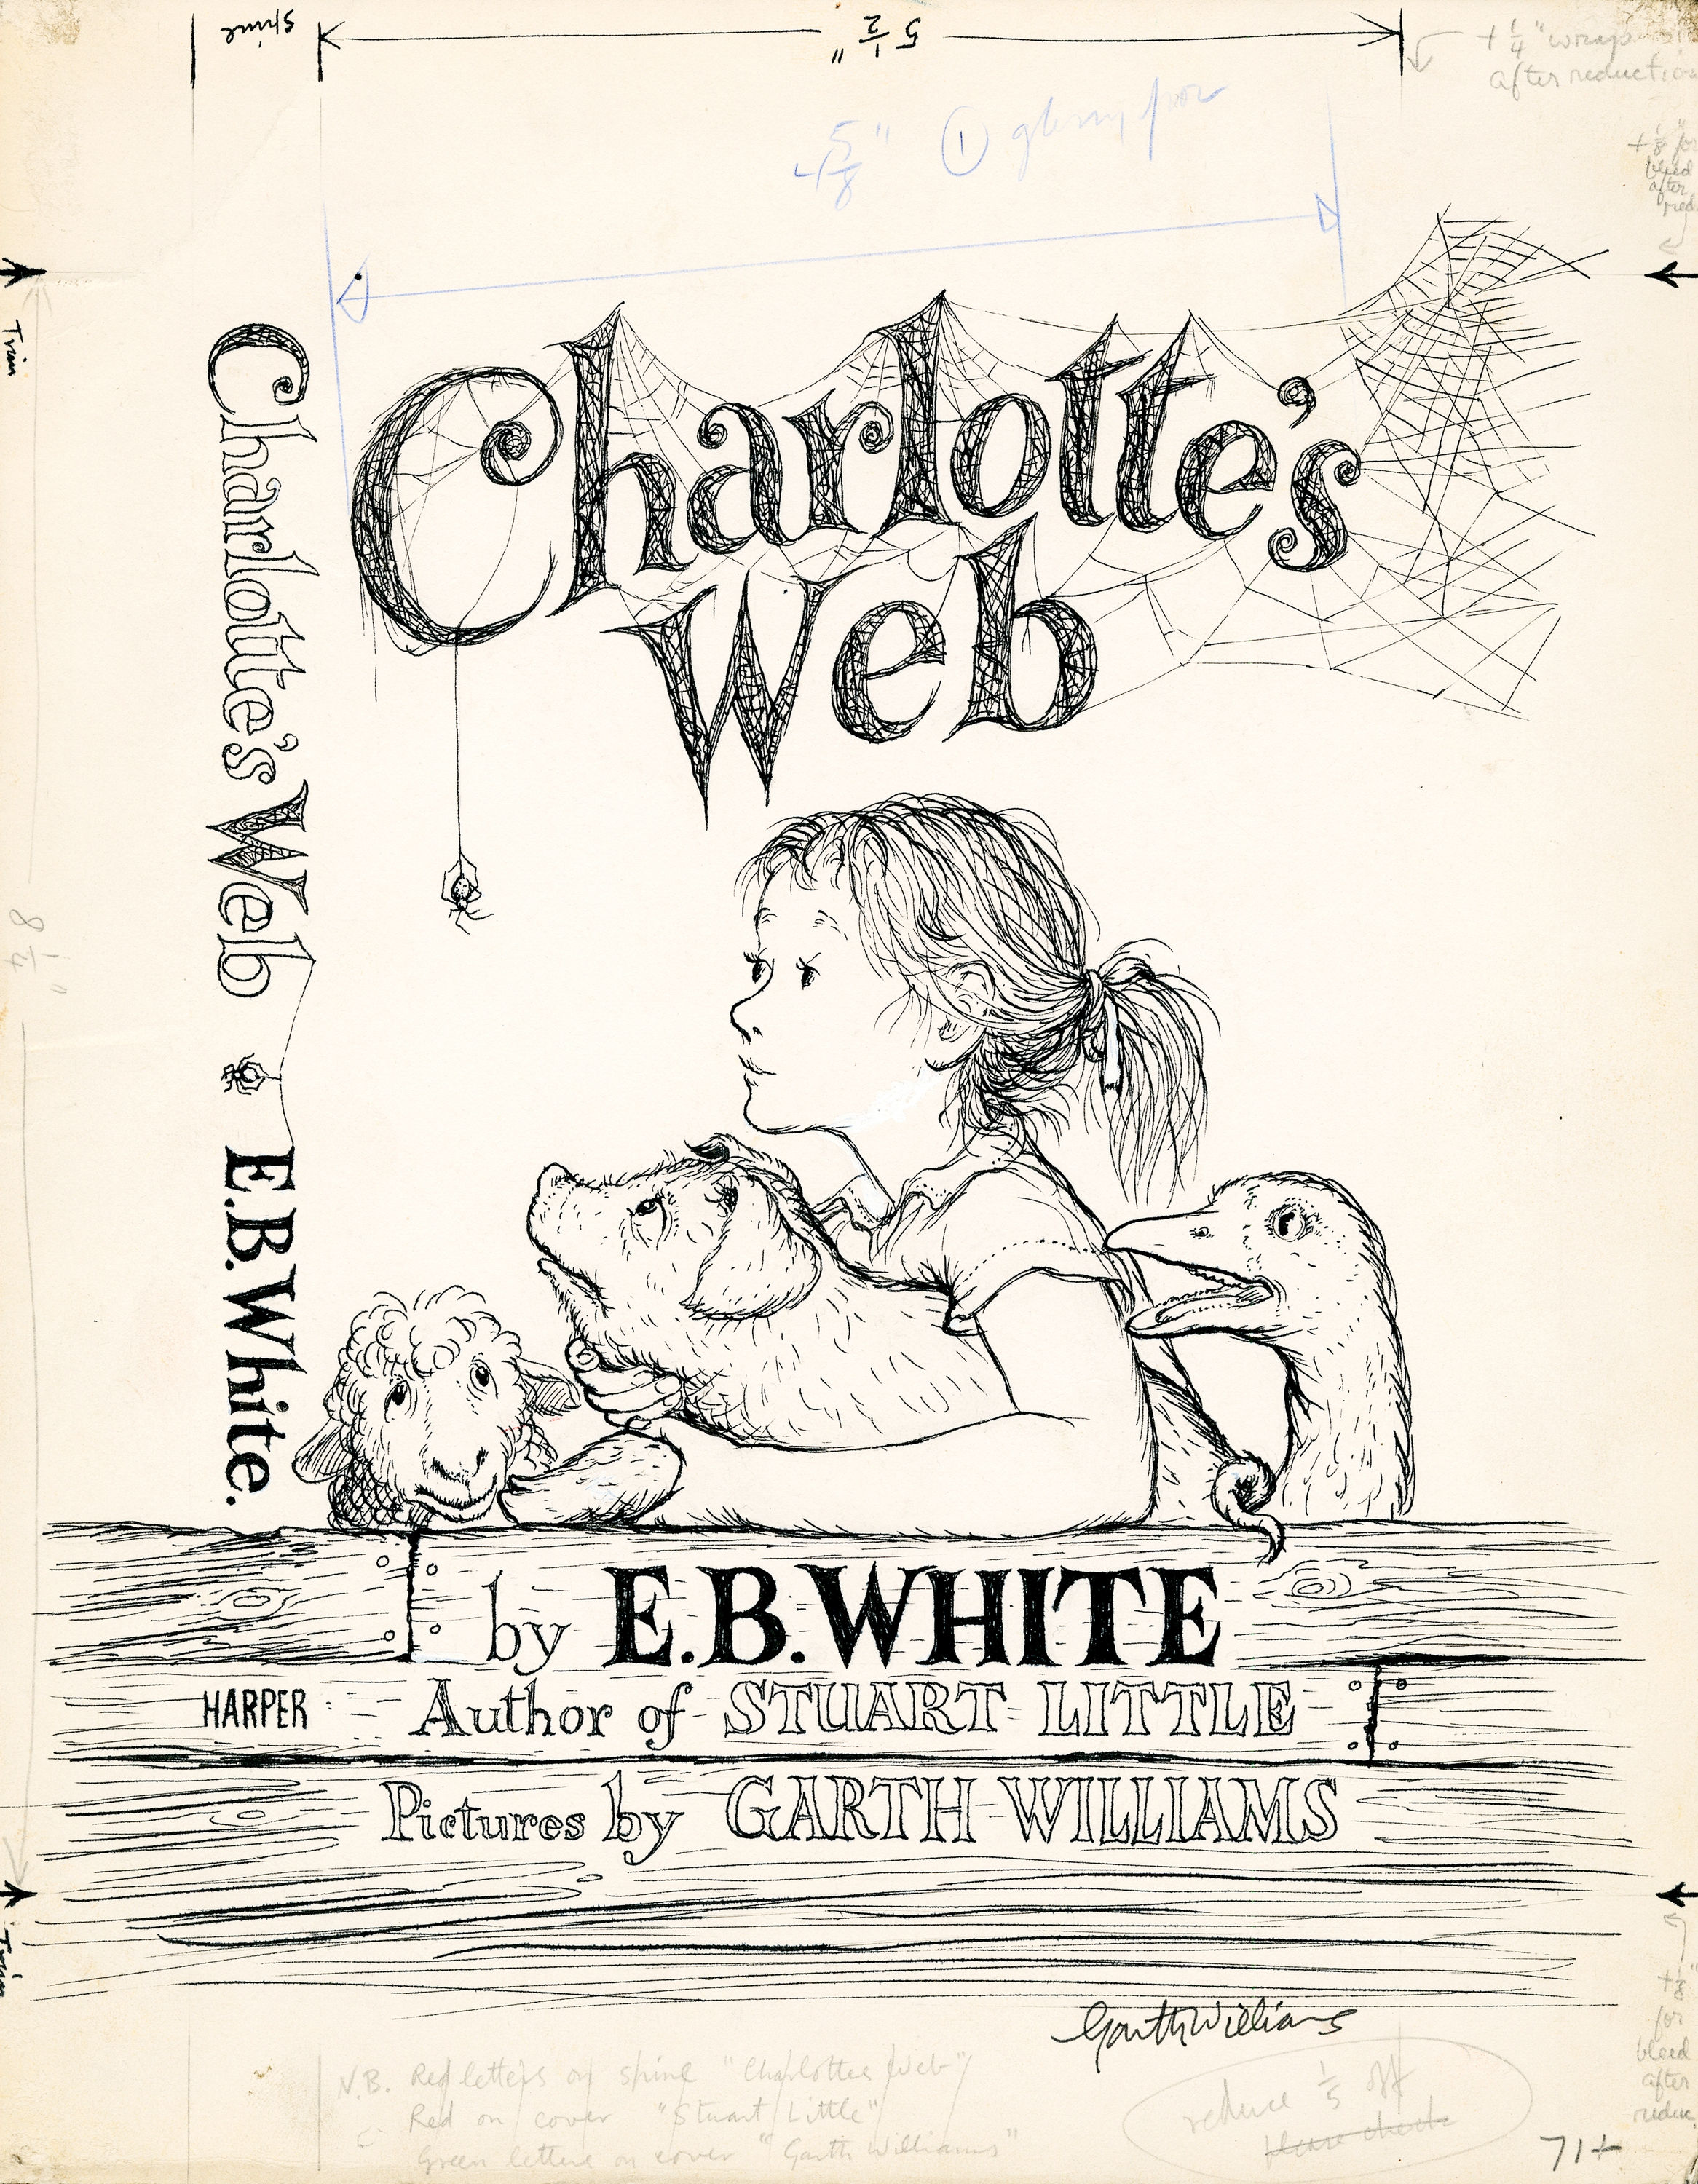 Comic Aun Book Cover Illustration Ver : Charlotte s web book cover art sells for